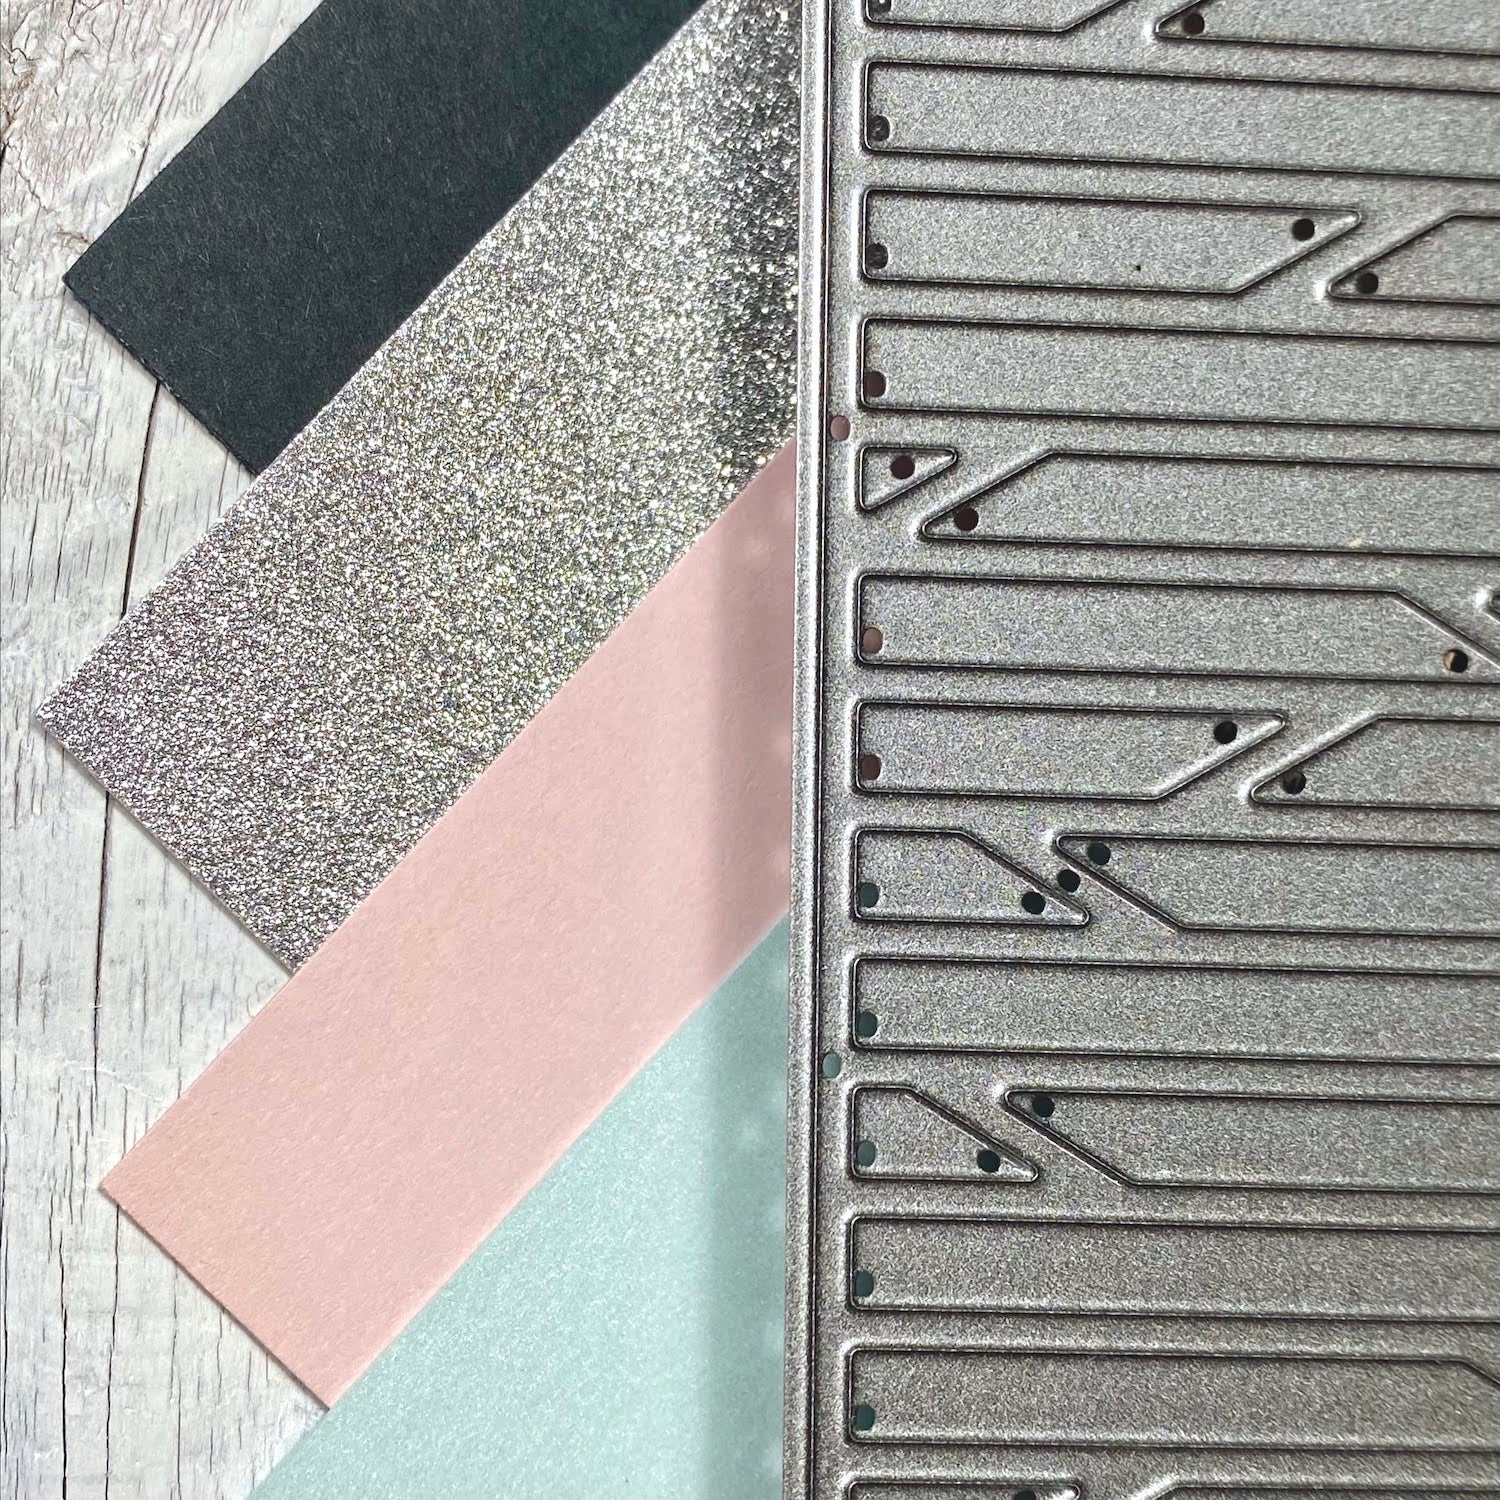 slate, silver mirrisparkle, nude, and aquamarine papers with background die